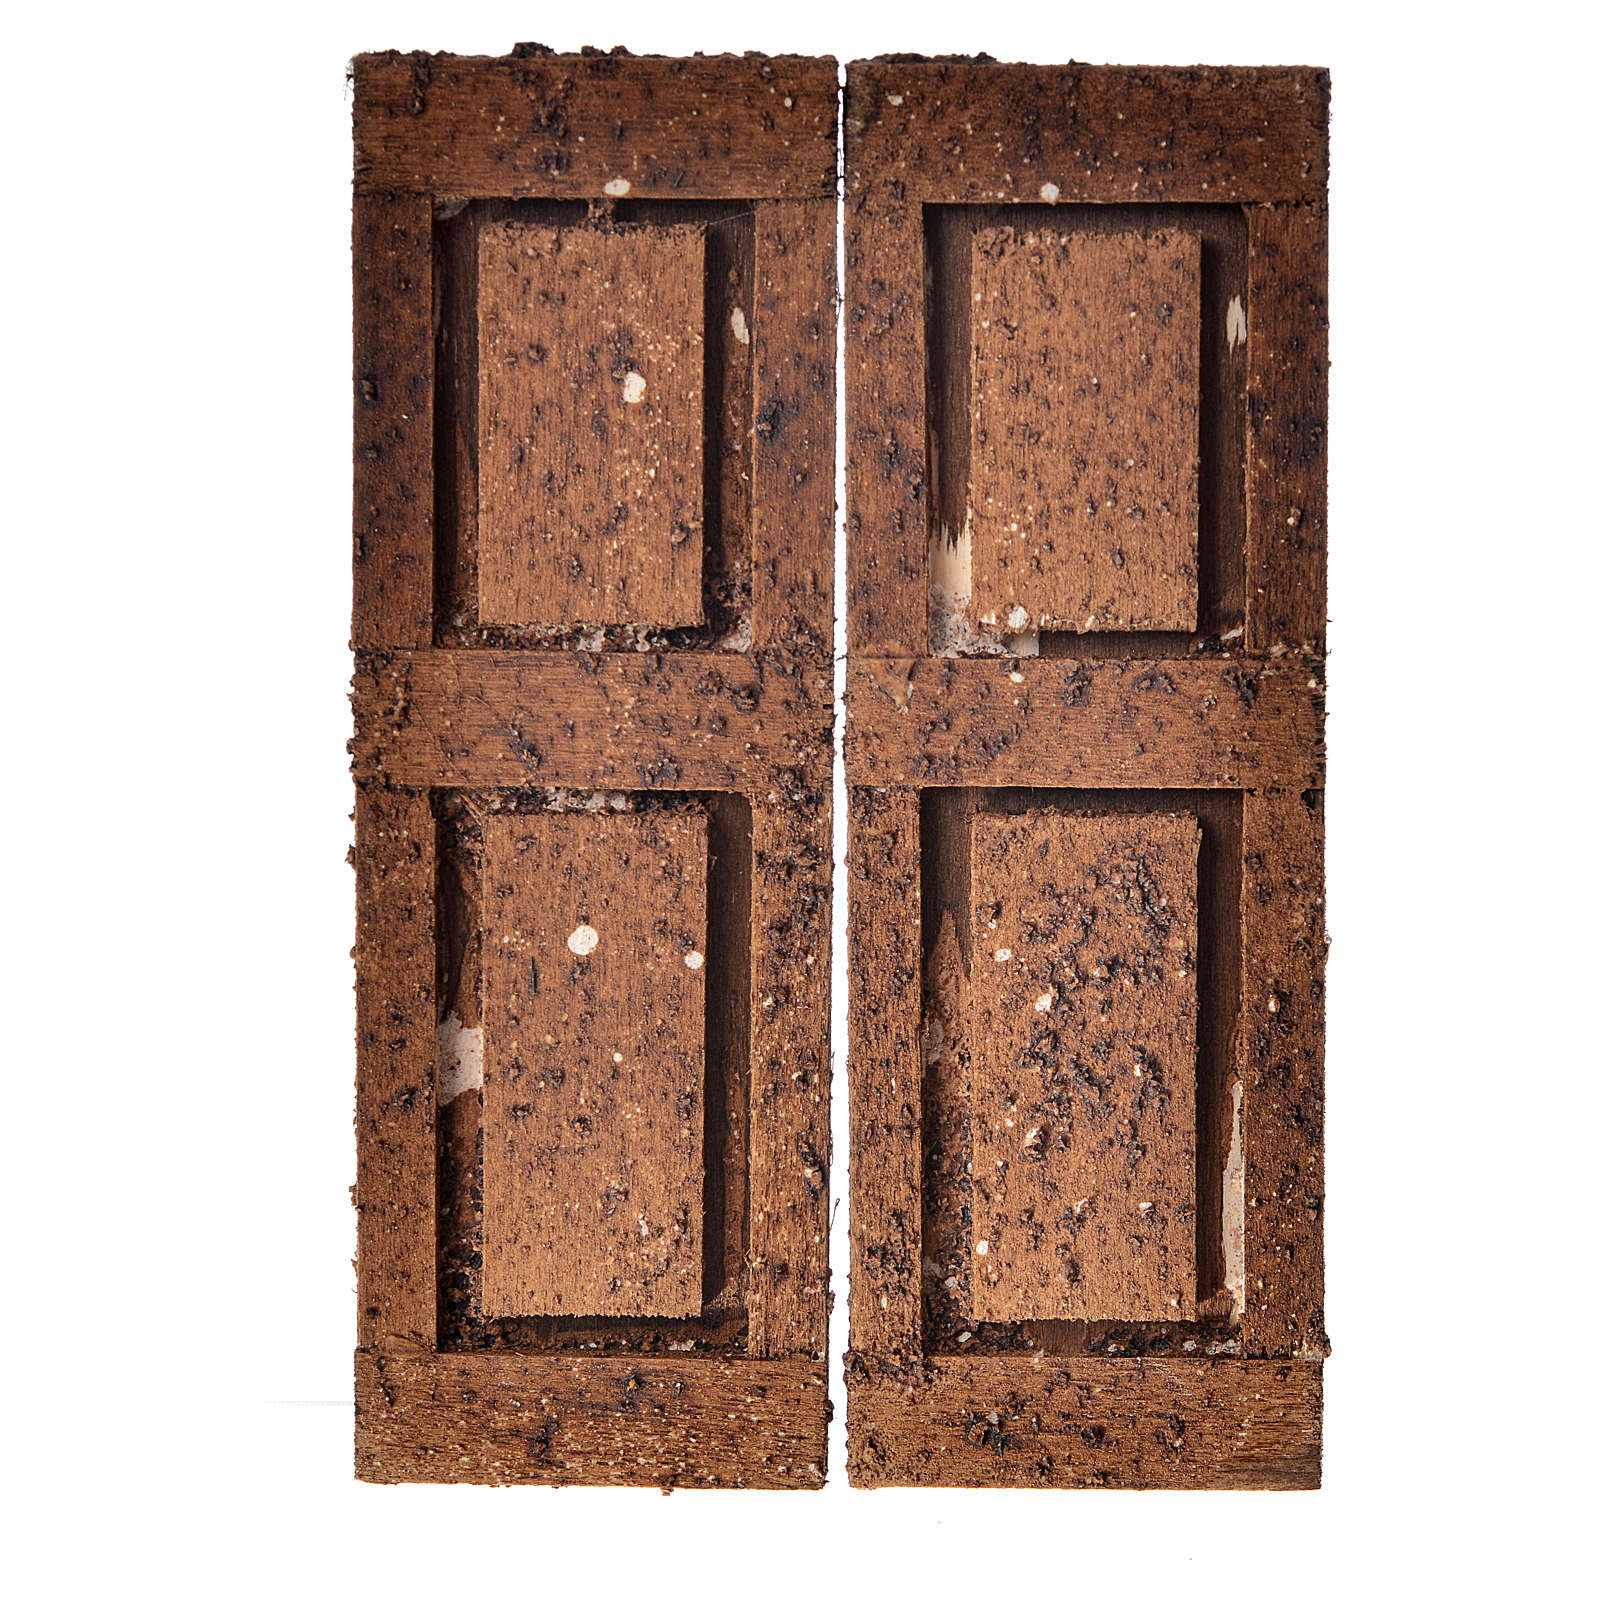 Nativity accessory, double door in wood for do-it-yourself nativ 4